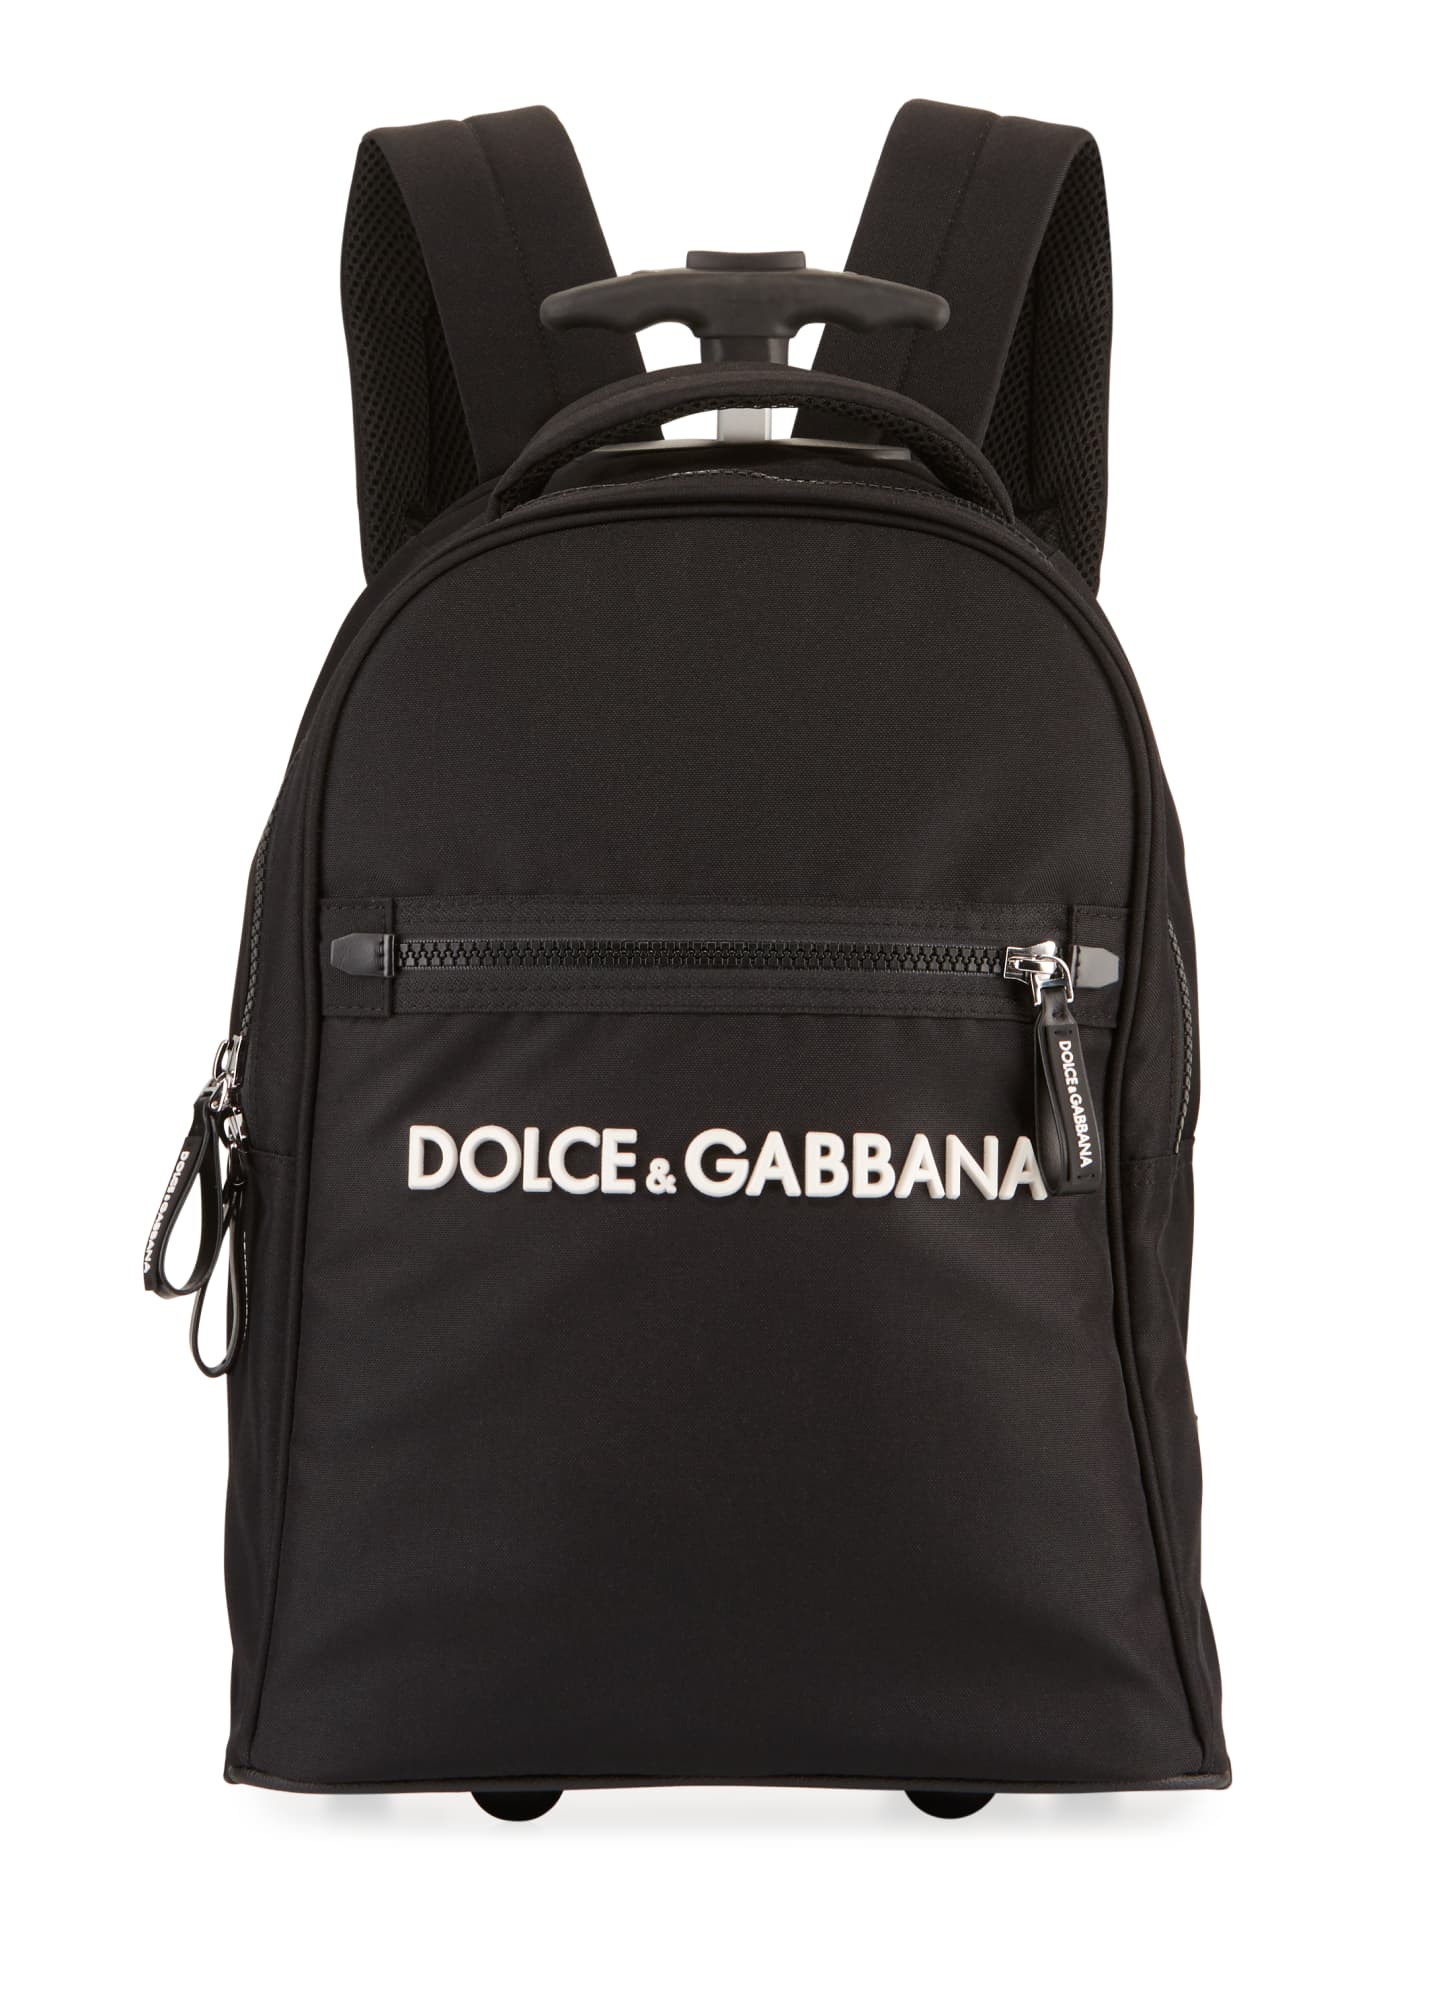 Dolce & Gabbana Kids' Rollerboard Backpack